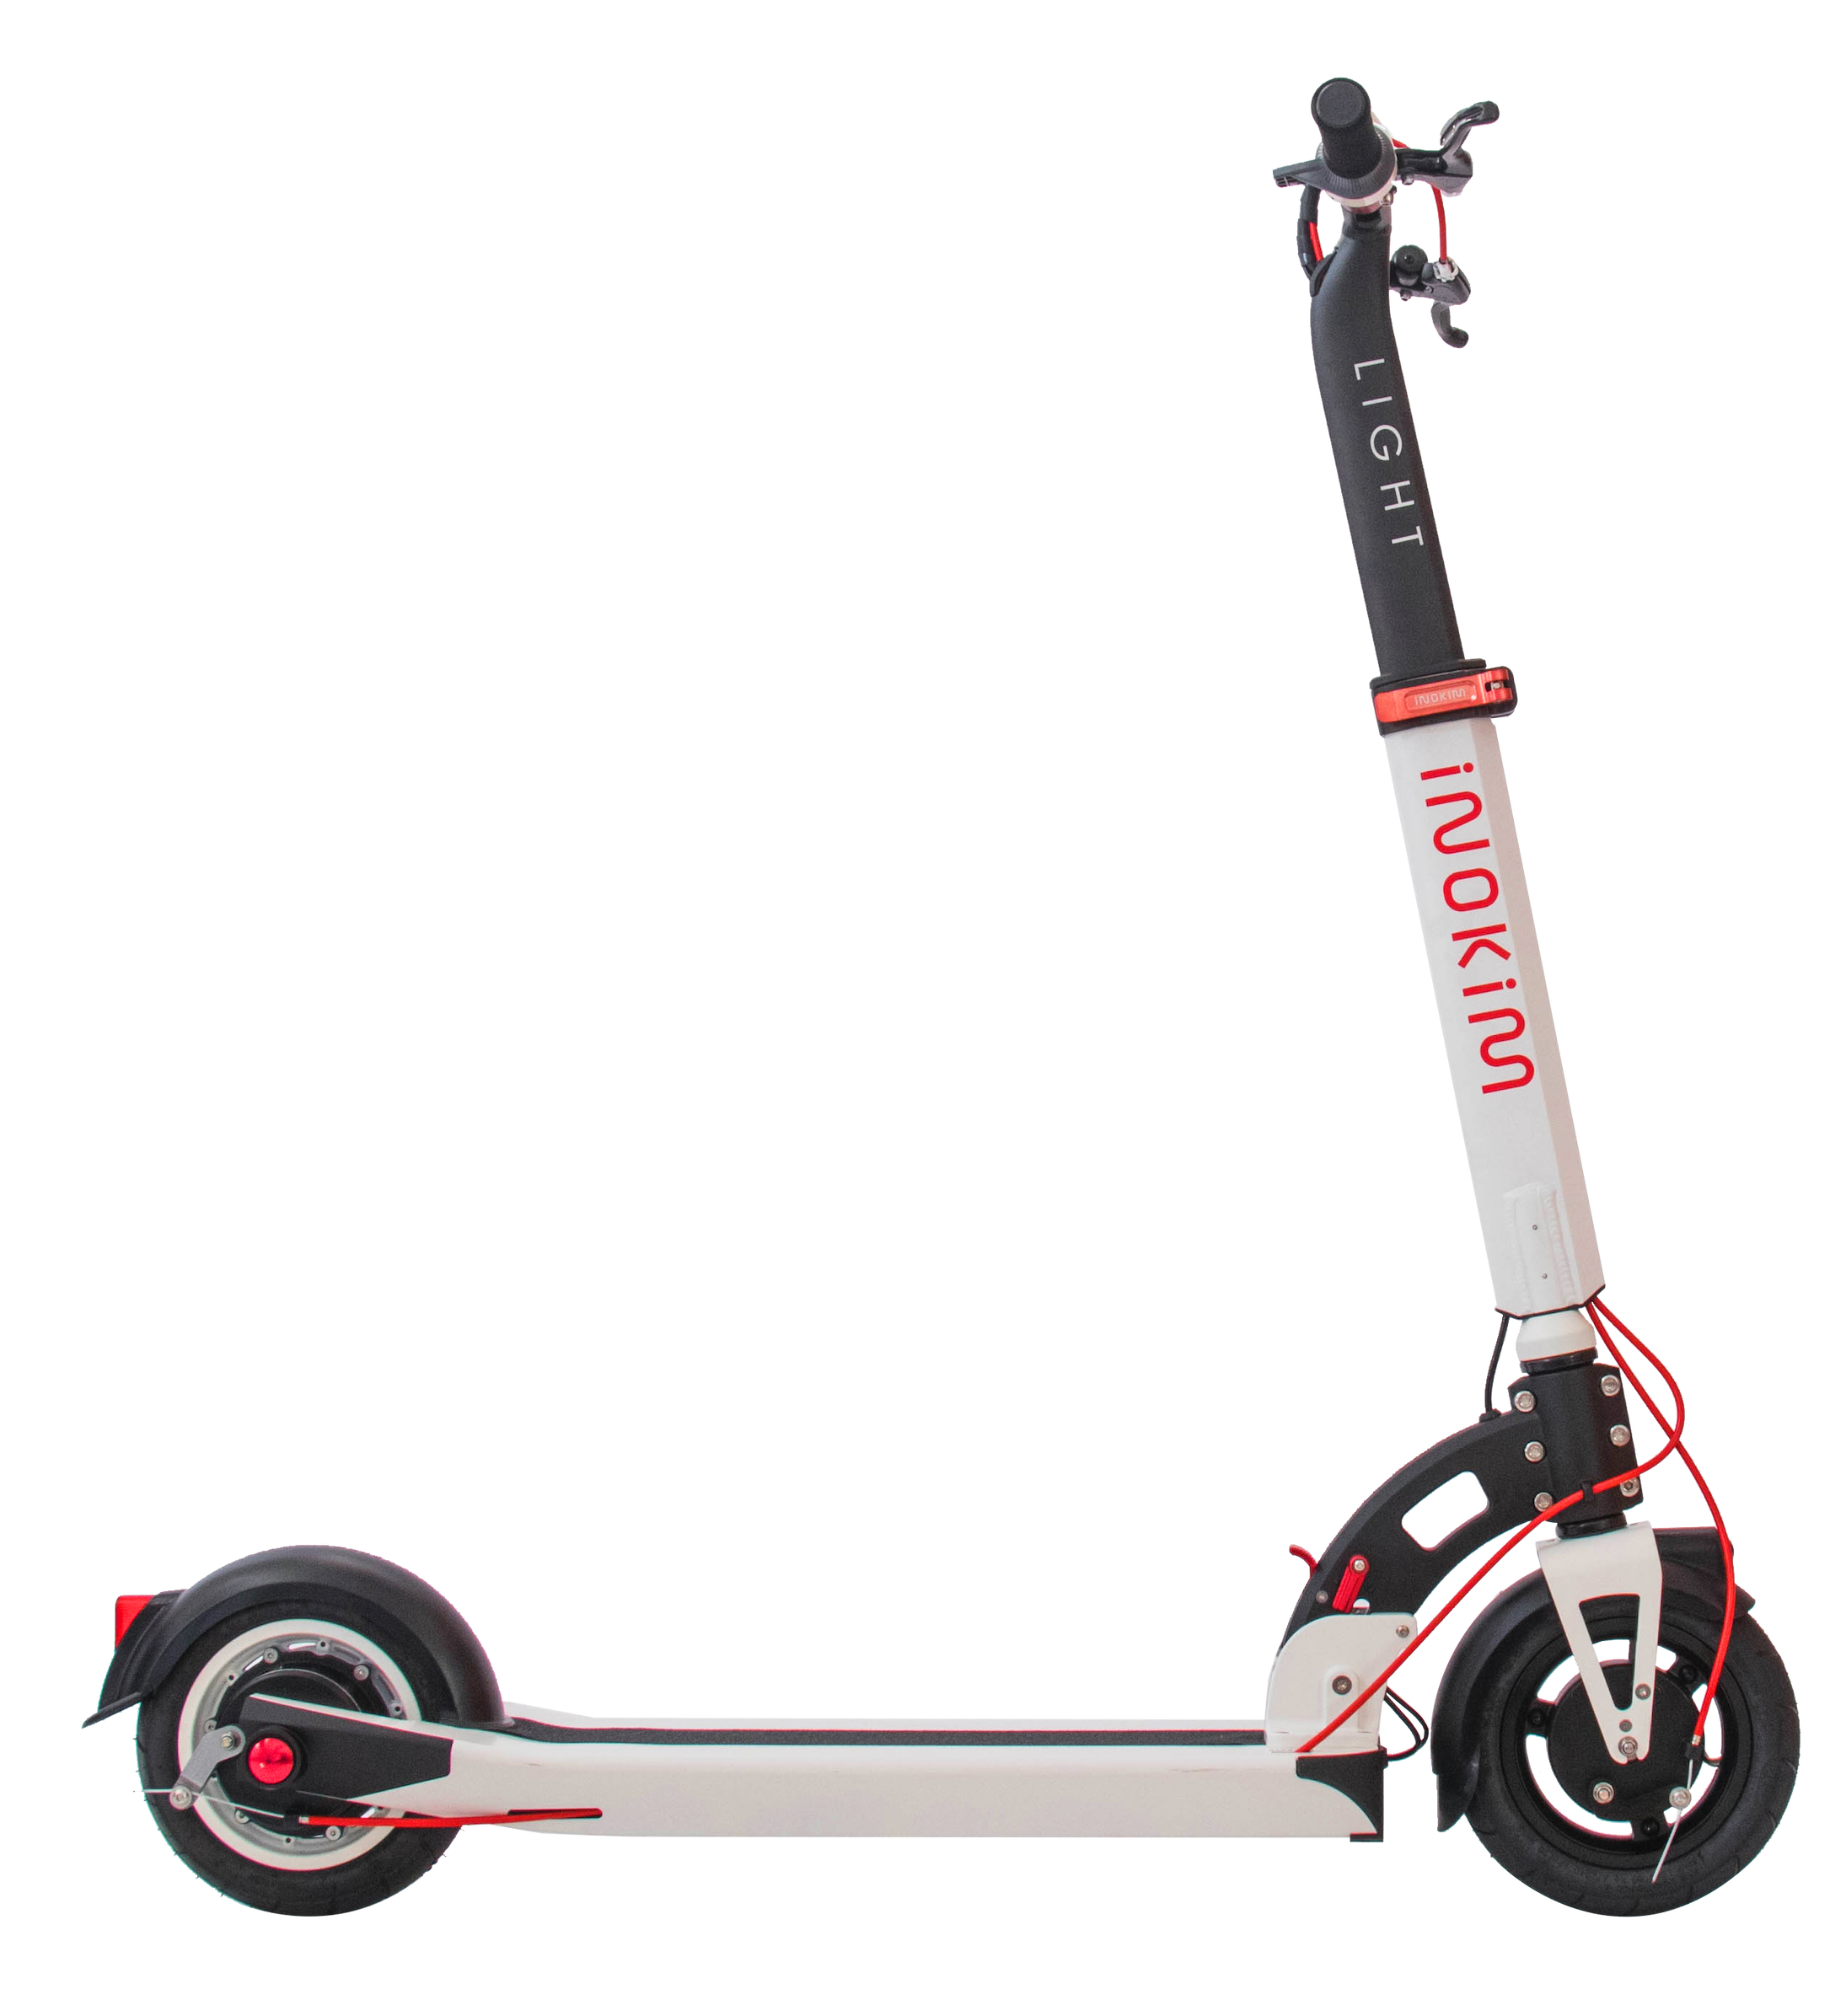 White Inokim Light 2 Electric Scooter Side View